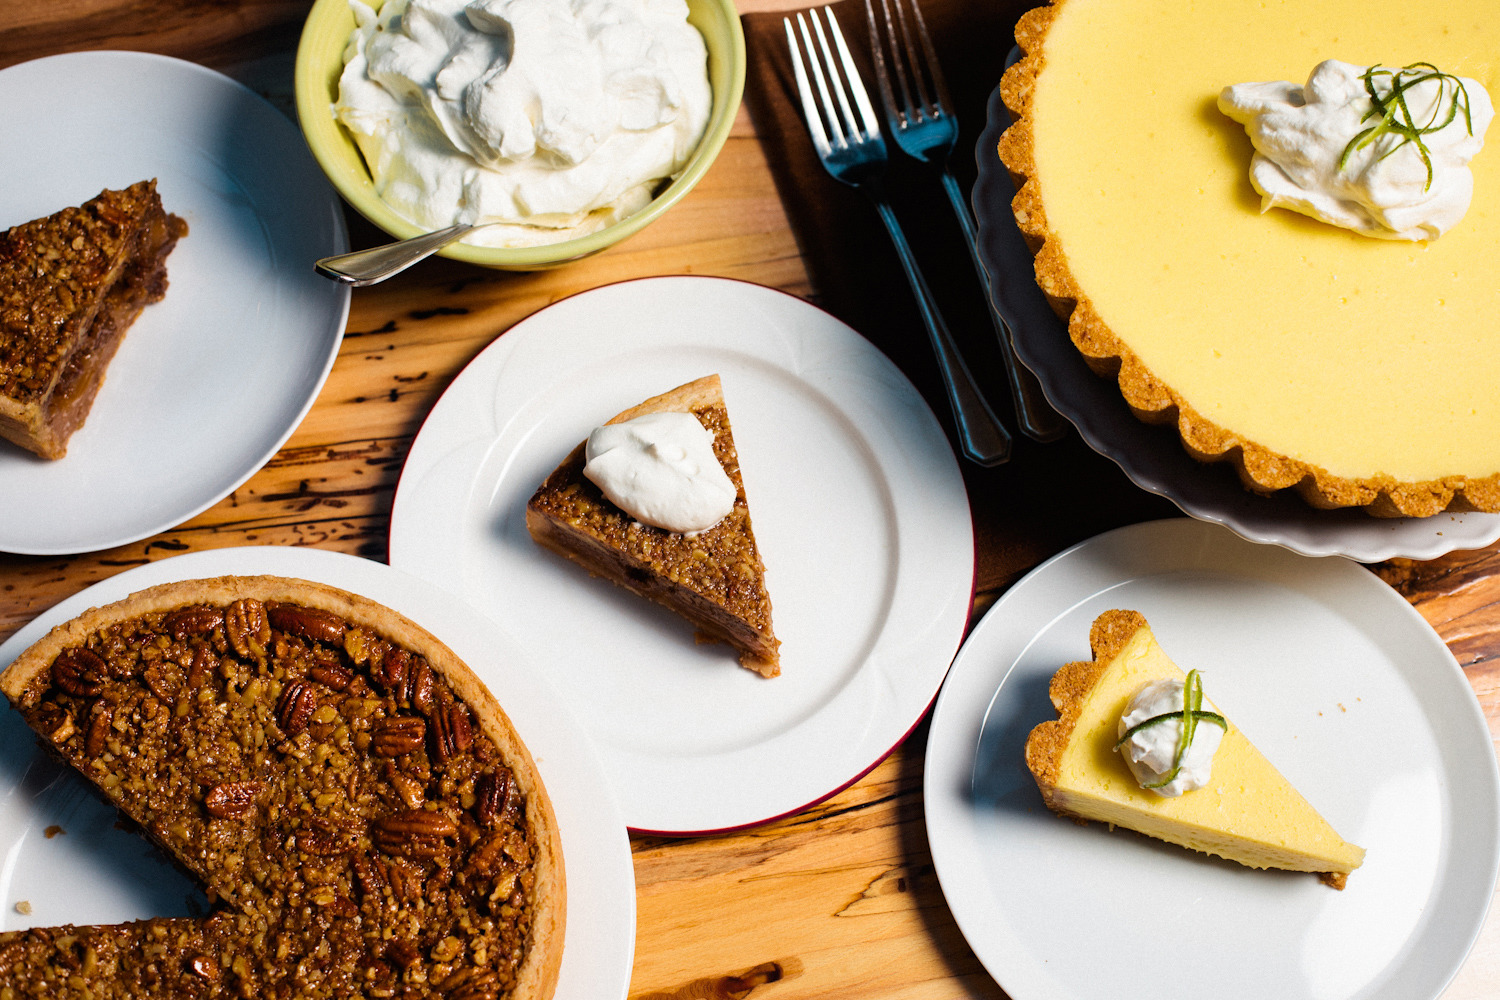 The 11 tastiest pies in Chicago